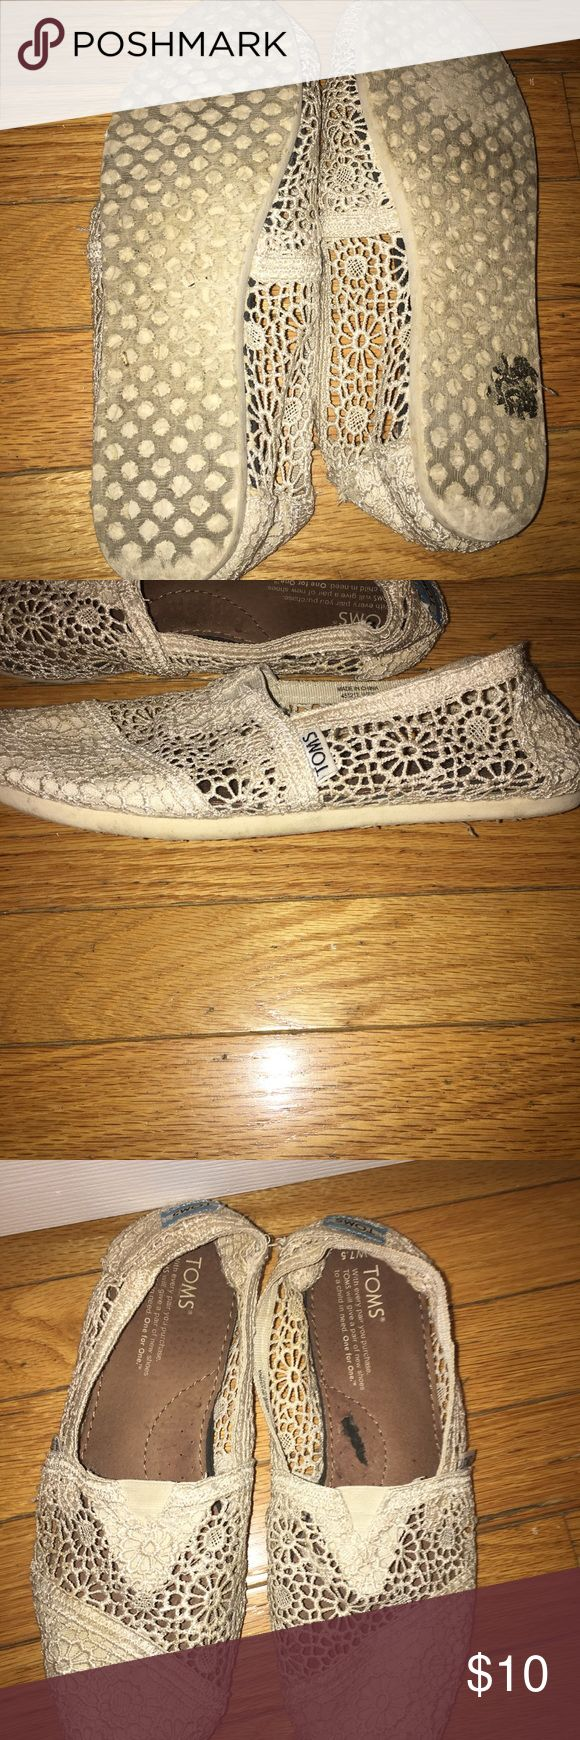 Creamed Colored Lace Toms Slightly dirty, small rips on shoes Toms Shoes Flats & Loafers